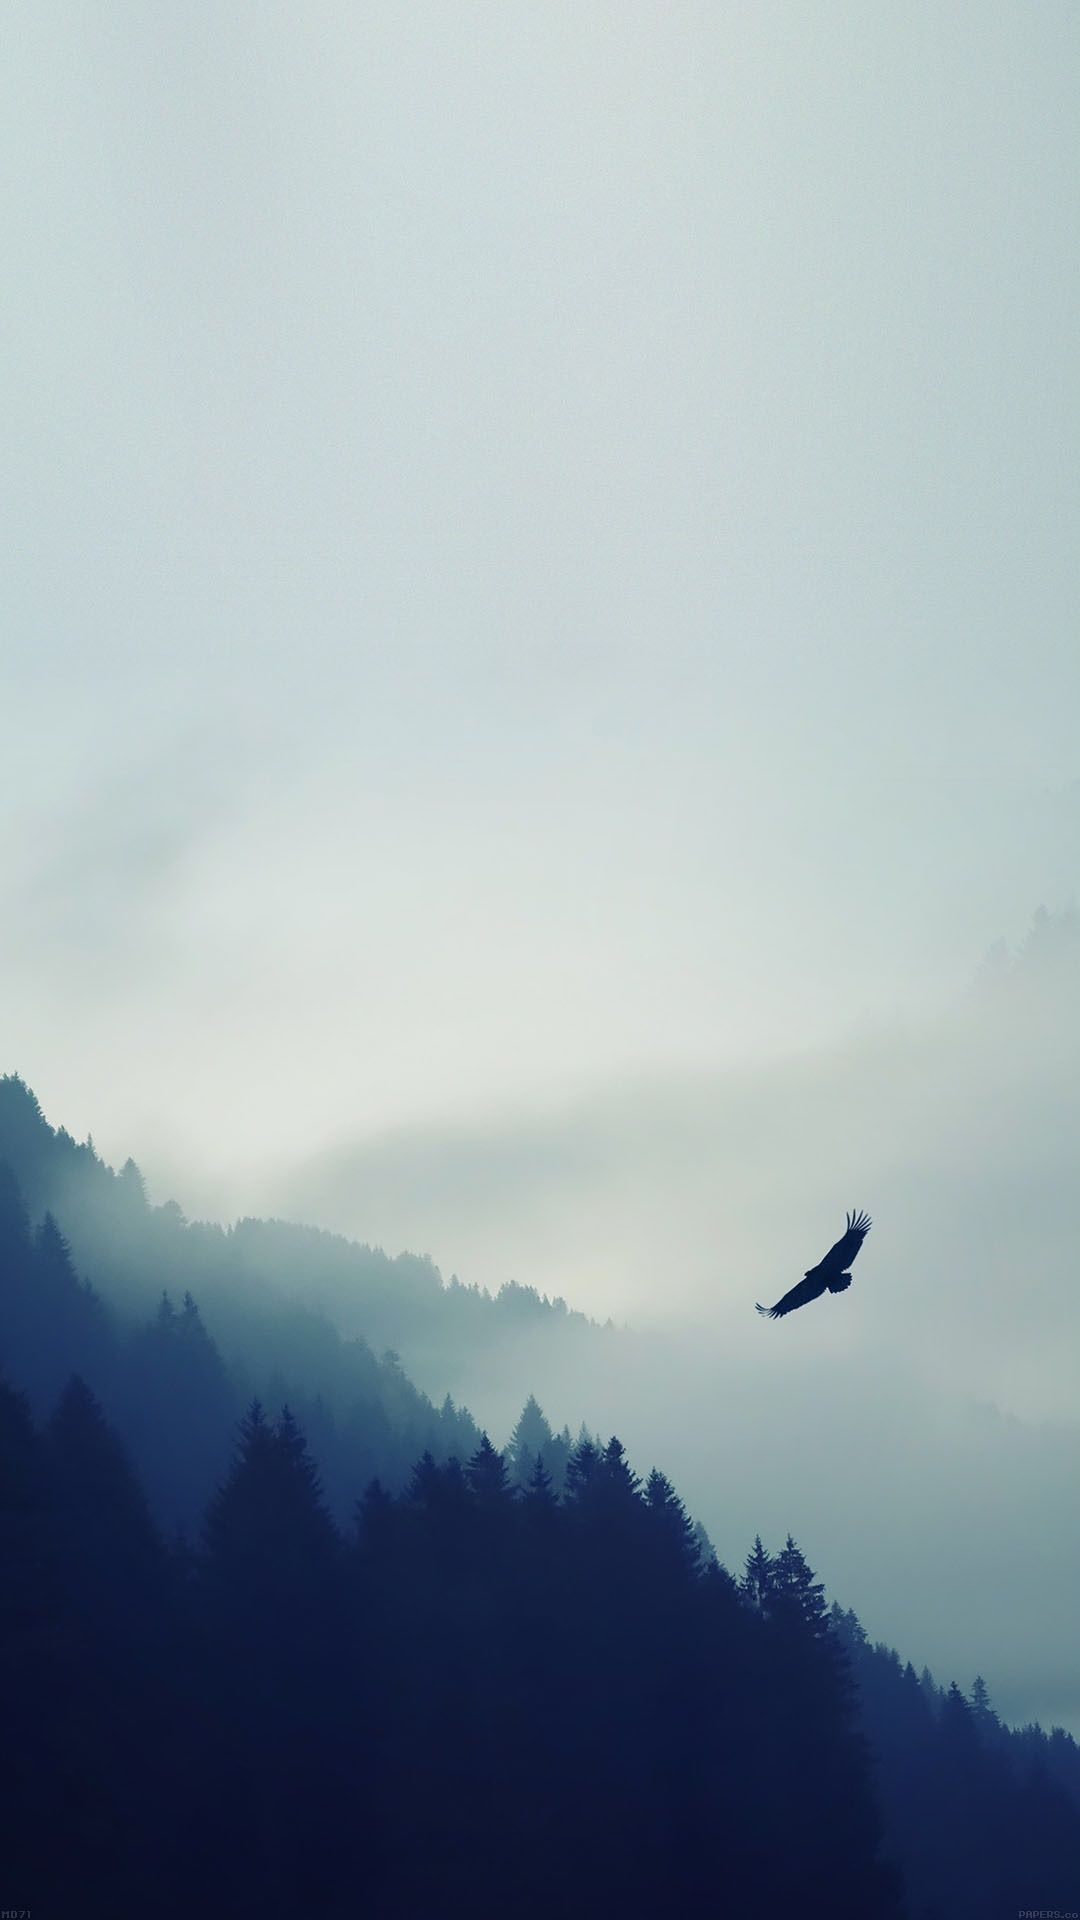 Bird Flying Over Foggy Forest Iphone 6 Plus Hd Wallpaper